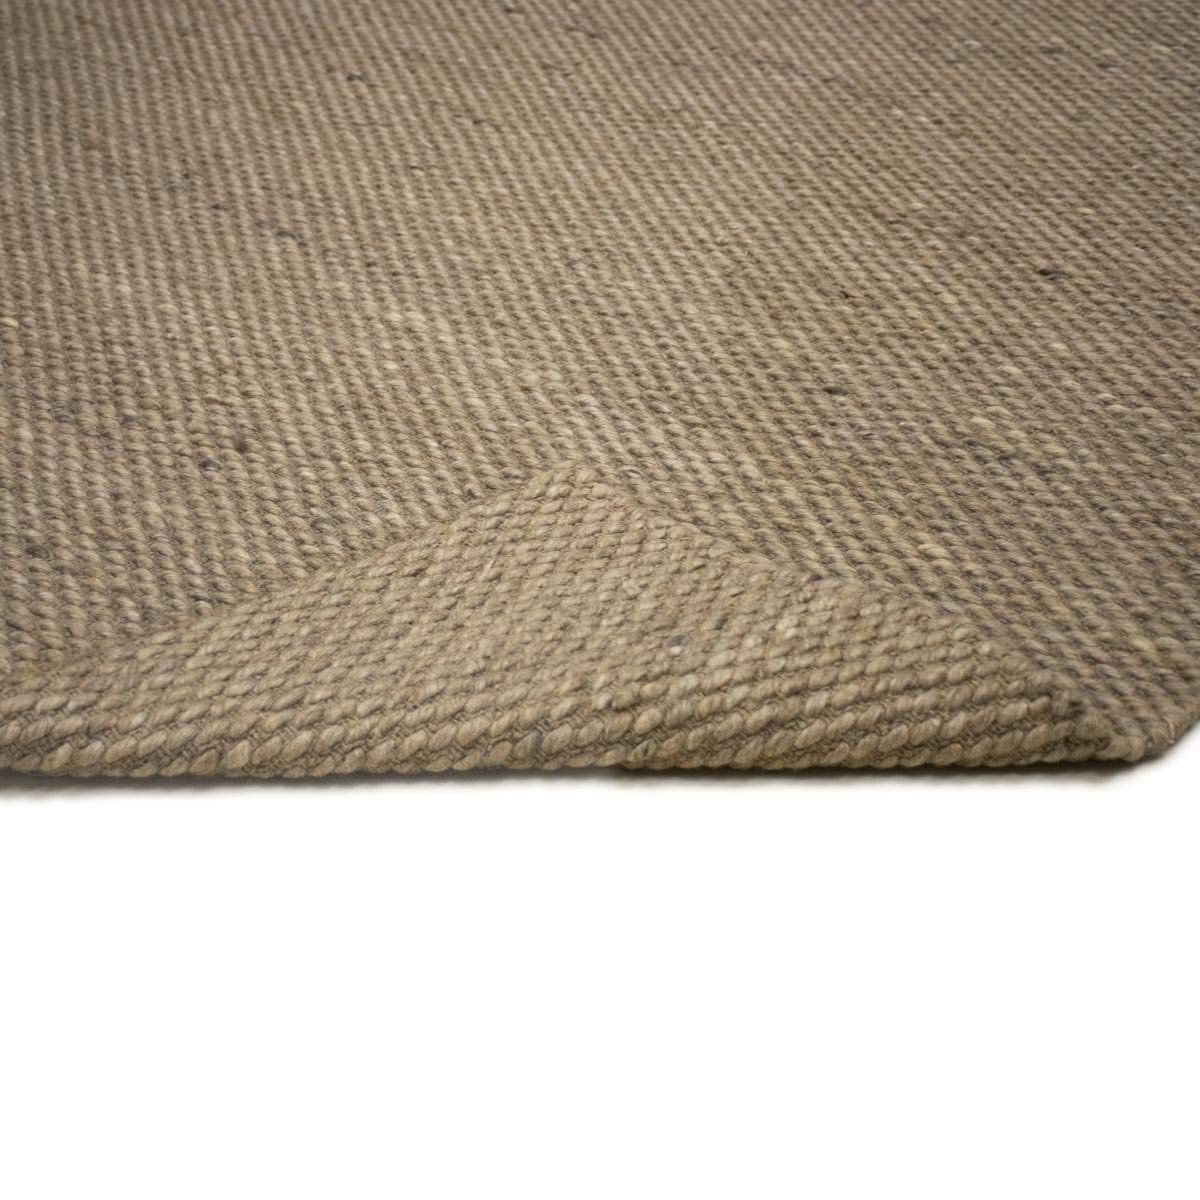 Arava Rug 01 Brown 6